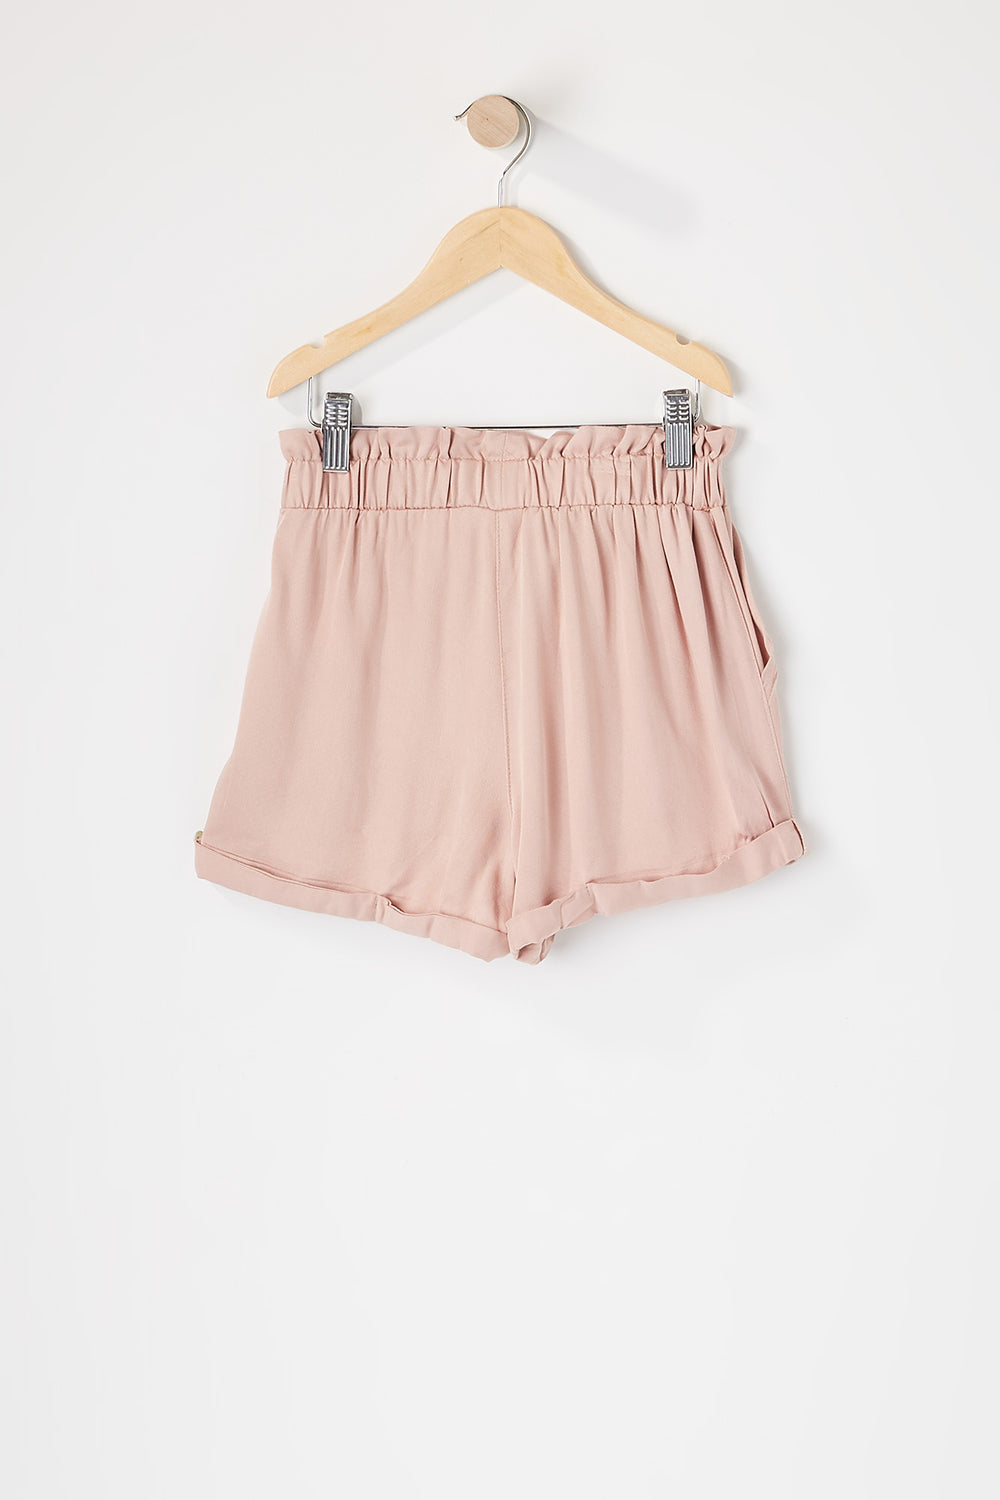 Girls Paperbag Cuffed Self Tie Short Pink